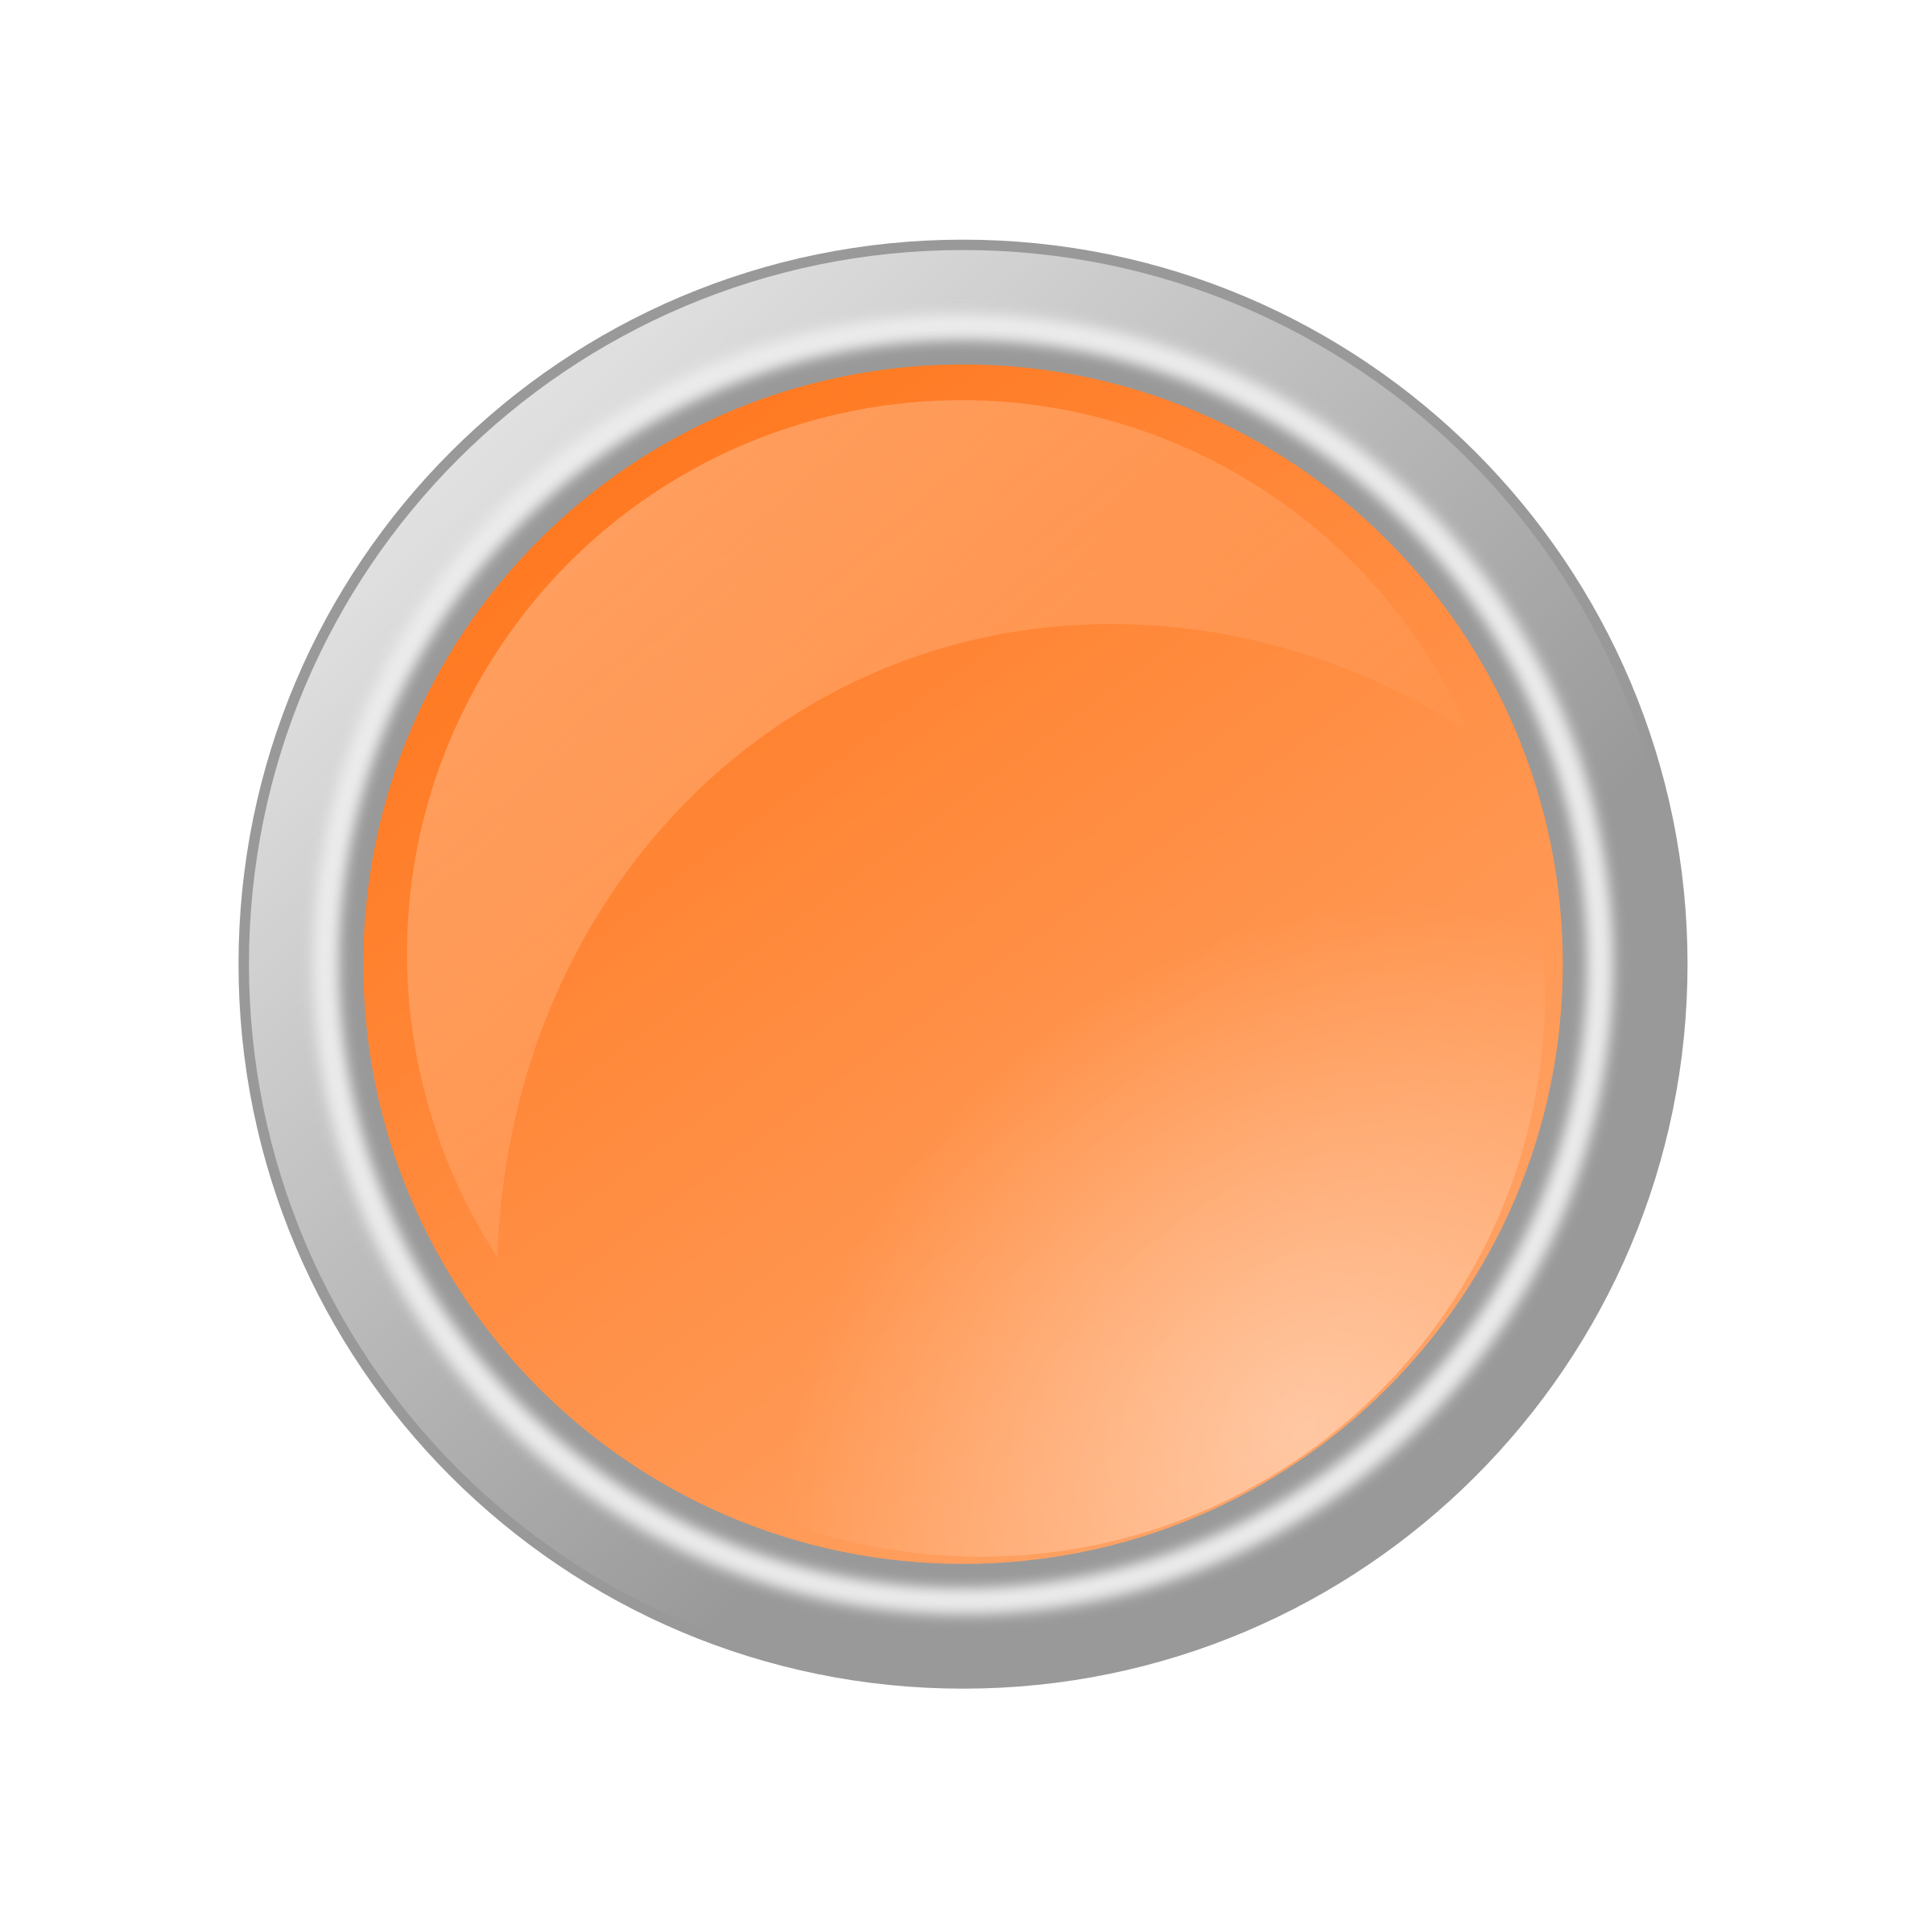 Orange button png. Glossy light icons free